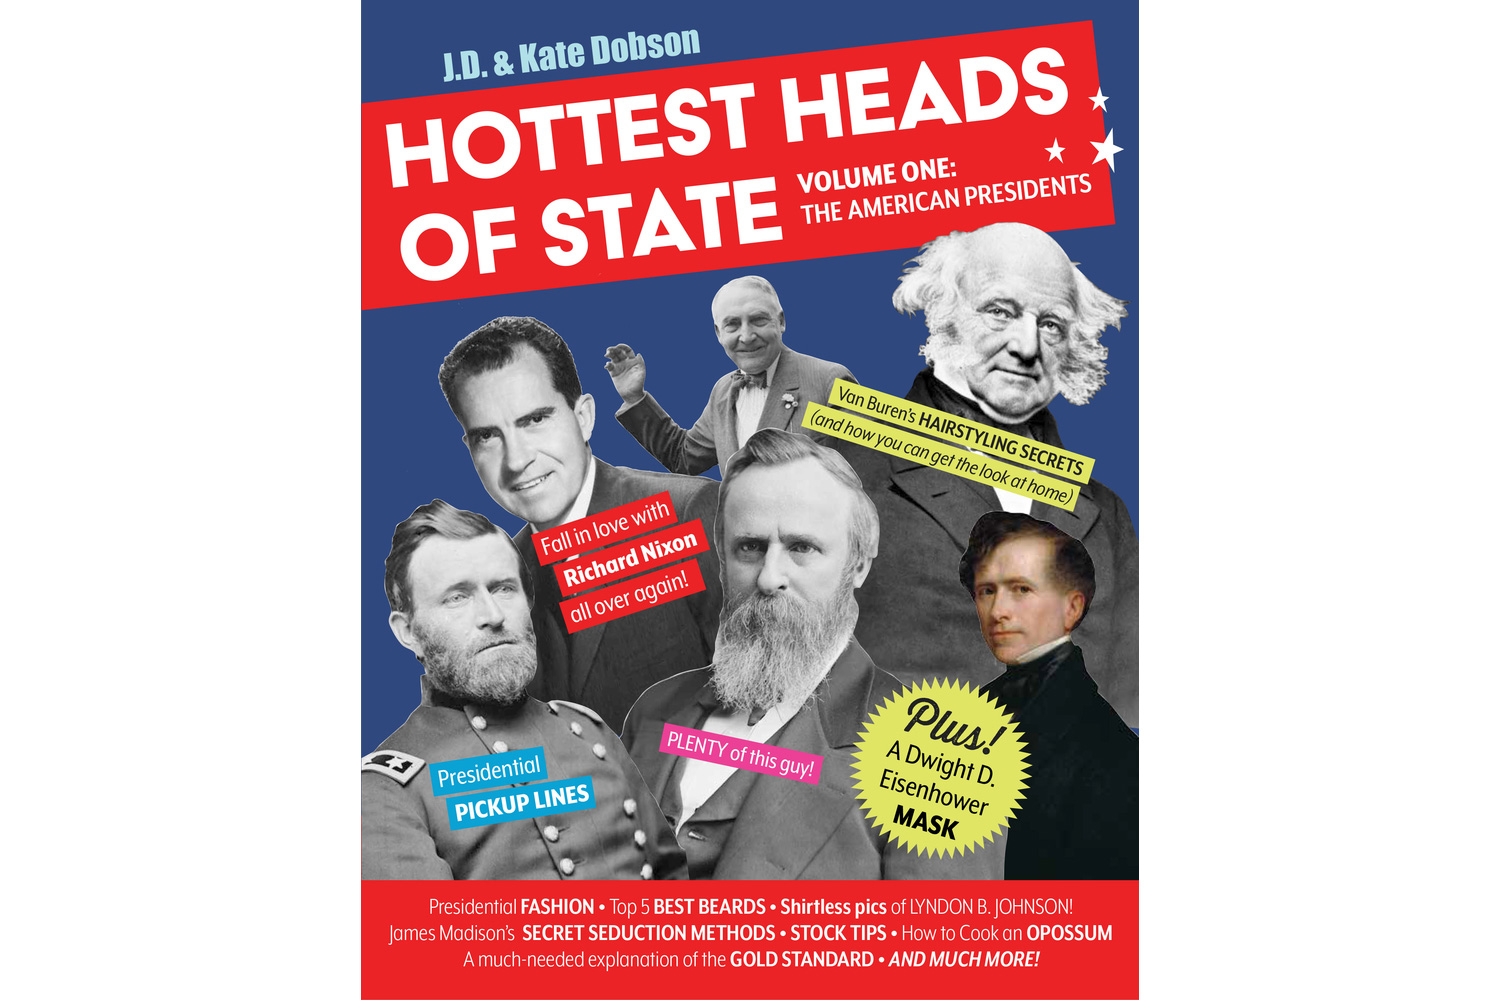 Hottest Heads of State, by J. D. and Kate Dobson